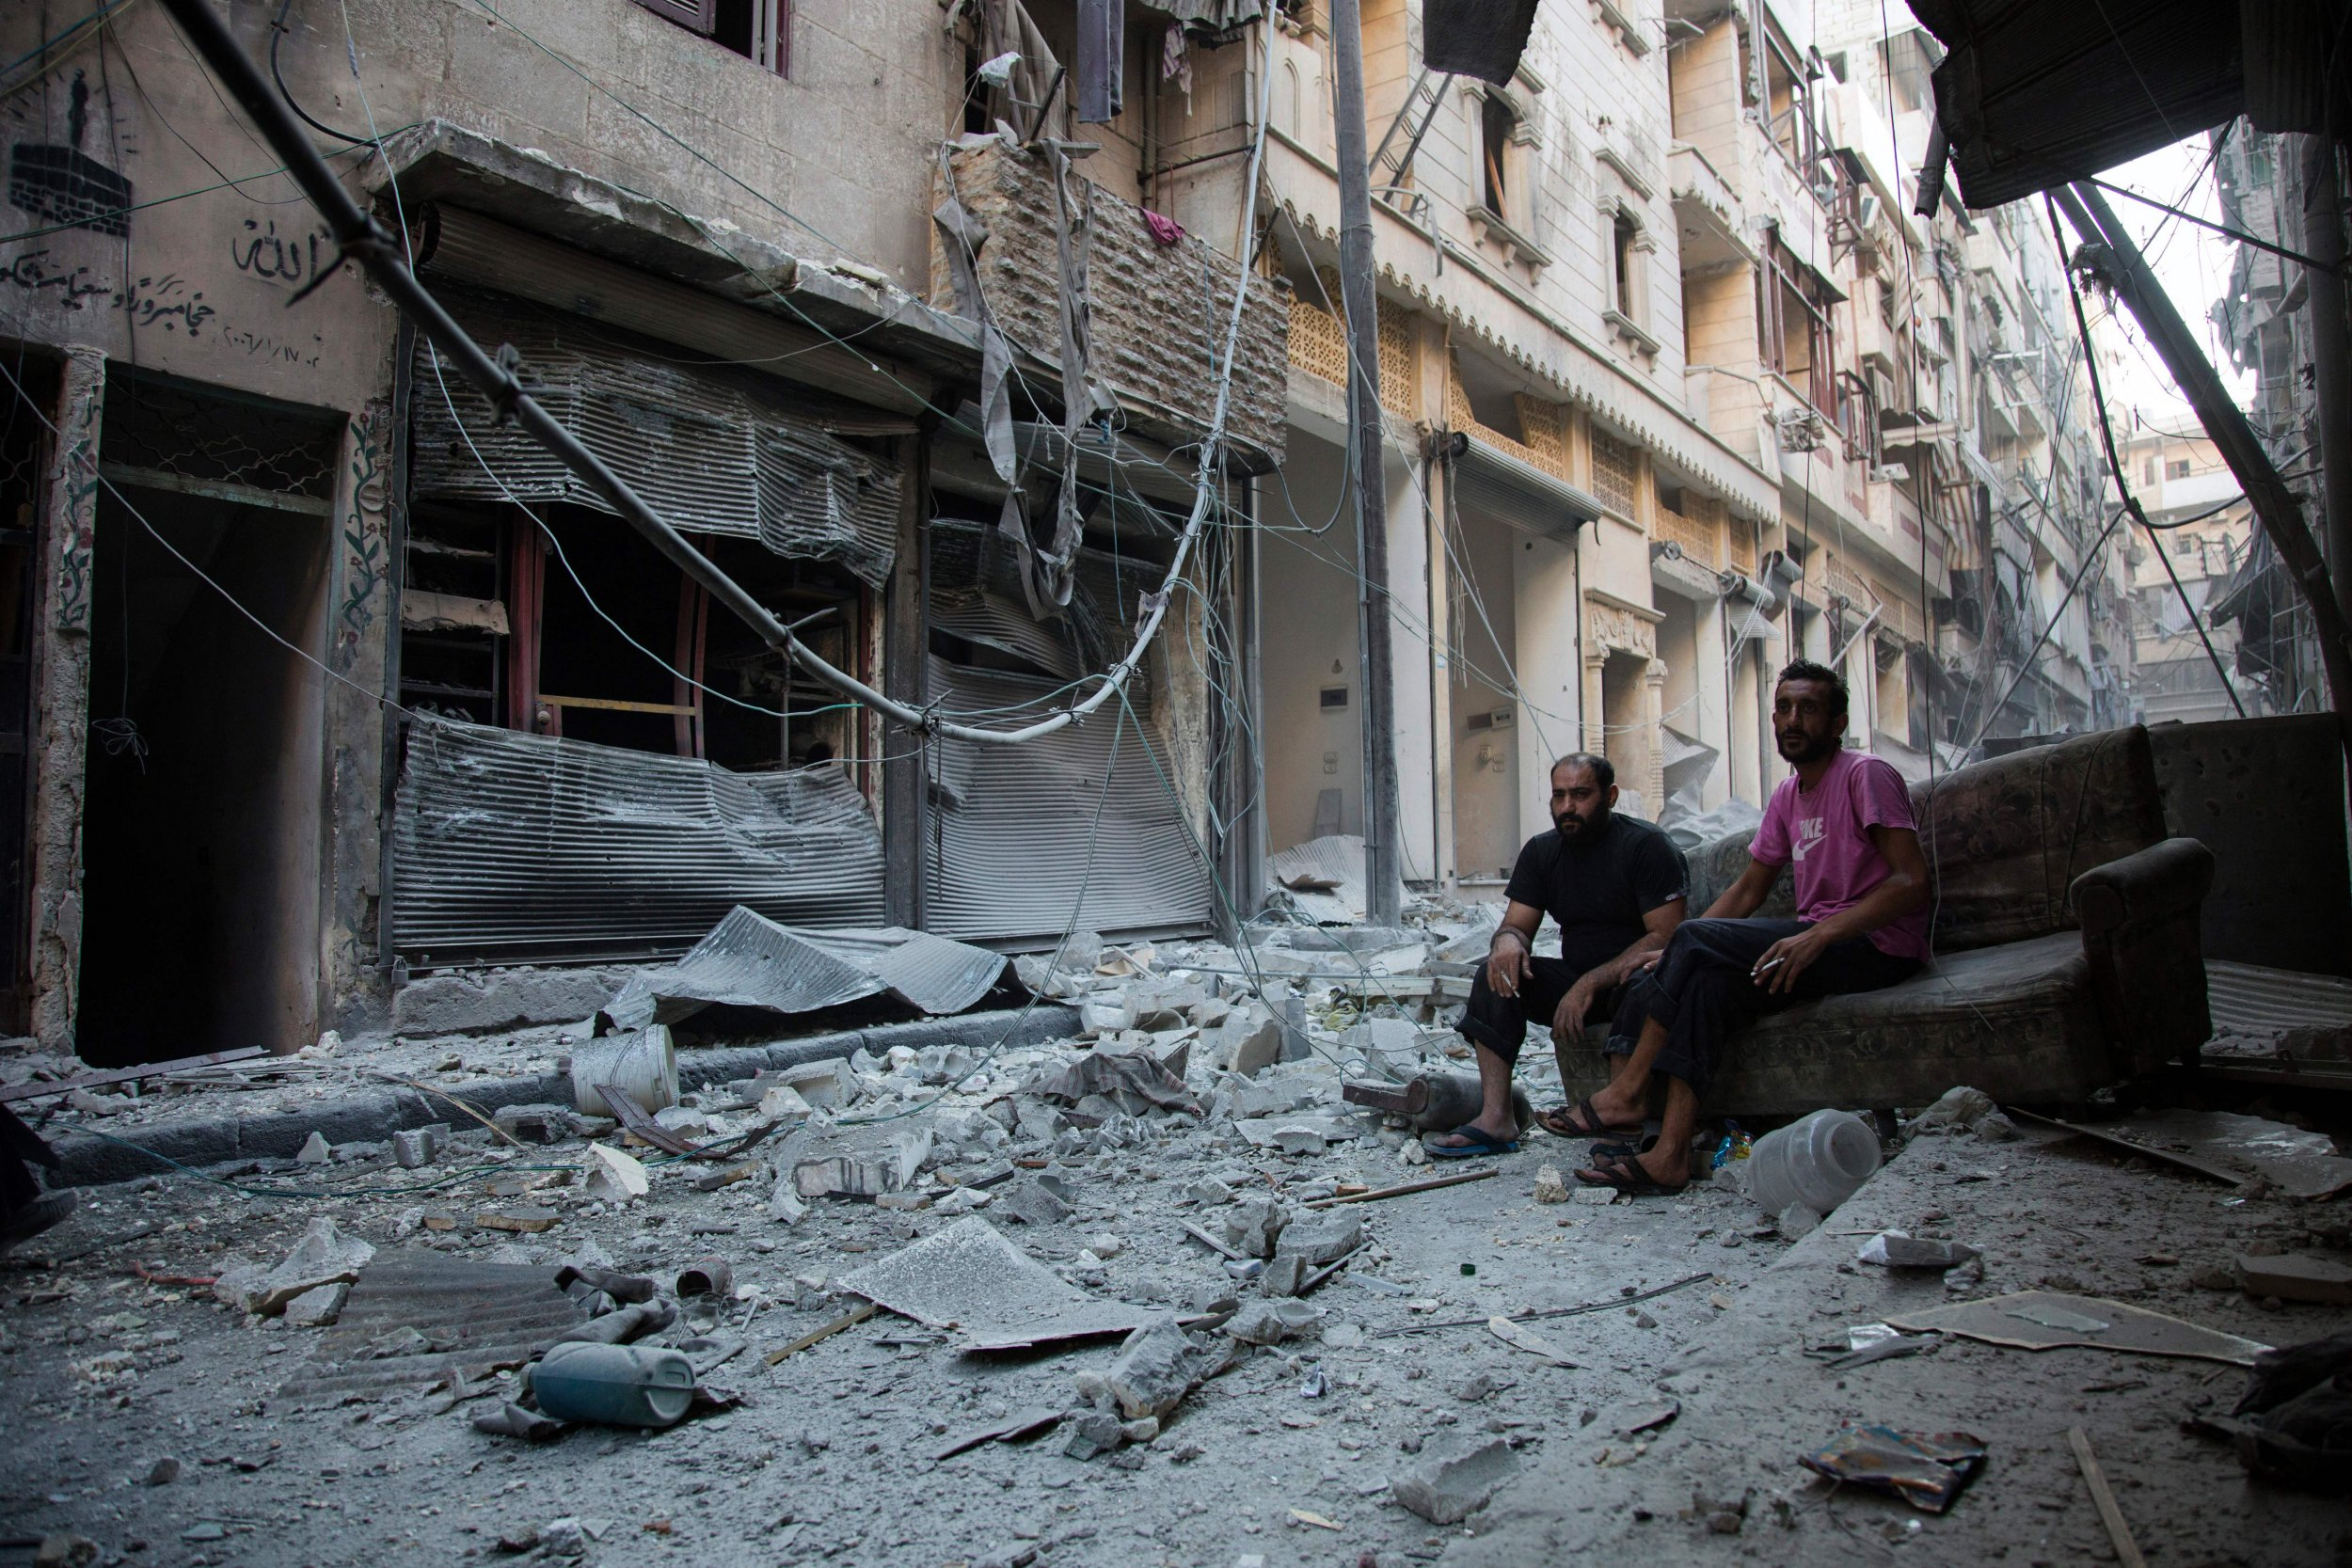 Syria men in Aleppo before ceasefire expiration